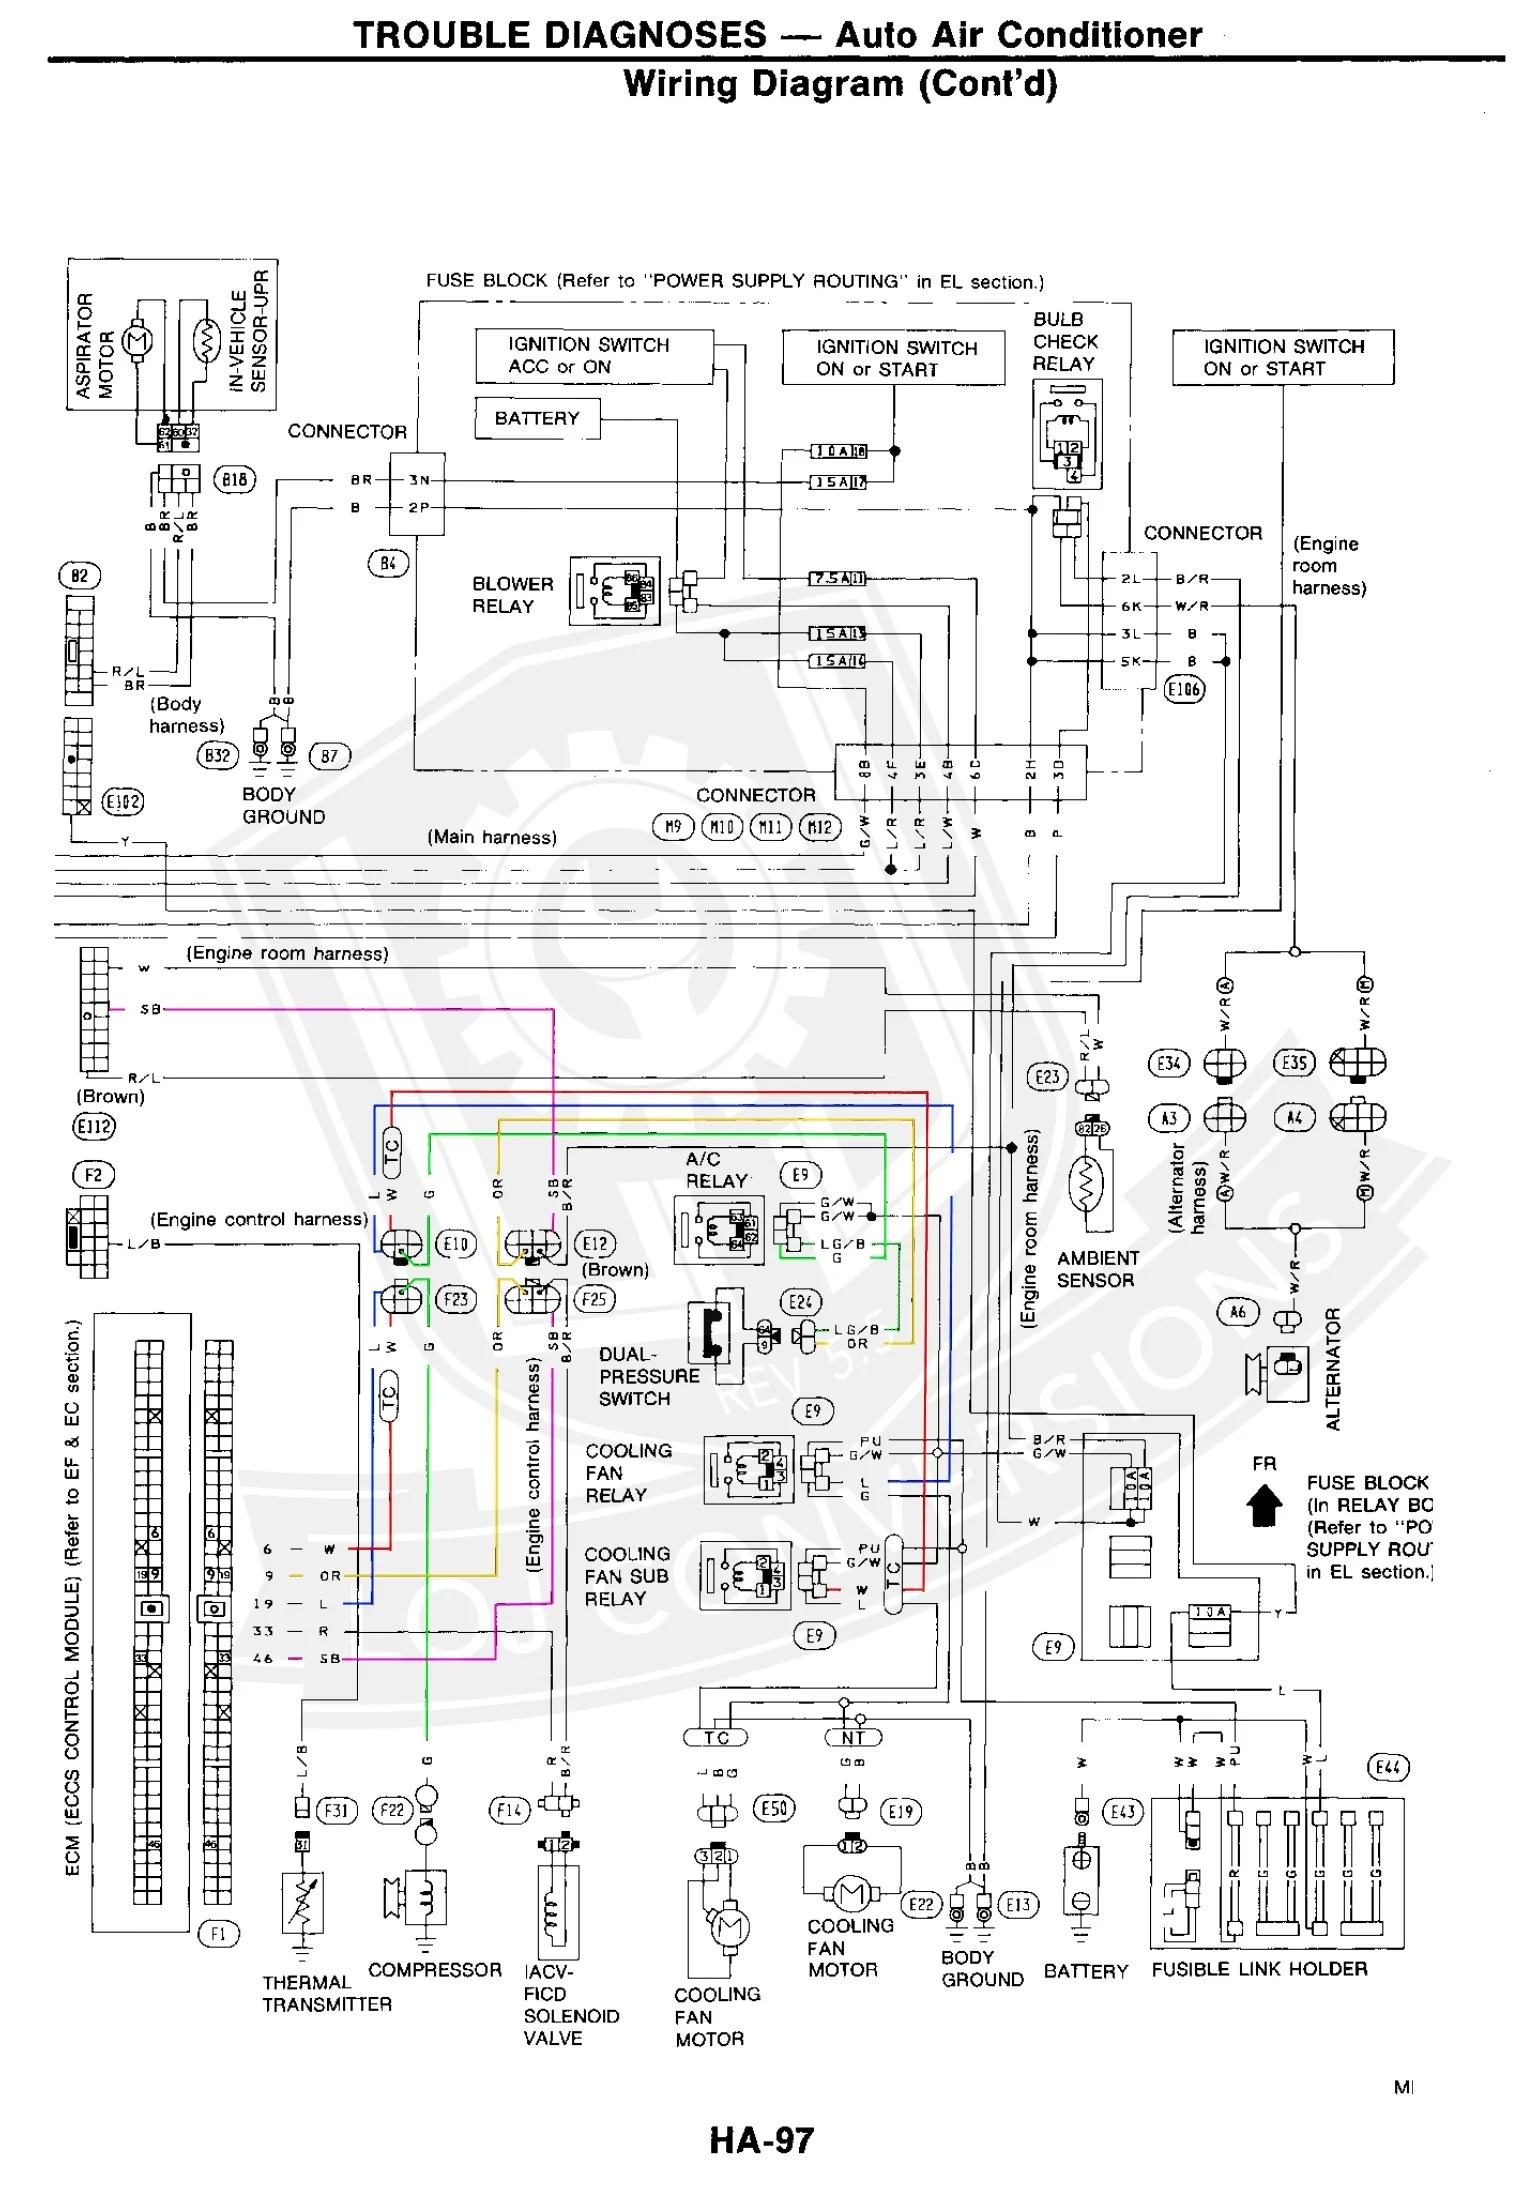 1977 280z fuse box wiring diagram centre280z engine diagrams wiring diagram1977 280z fuse box wiring diagram1977 [ 1515 x 2194 Pixel ]